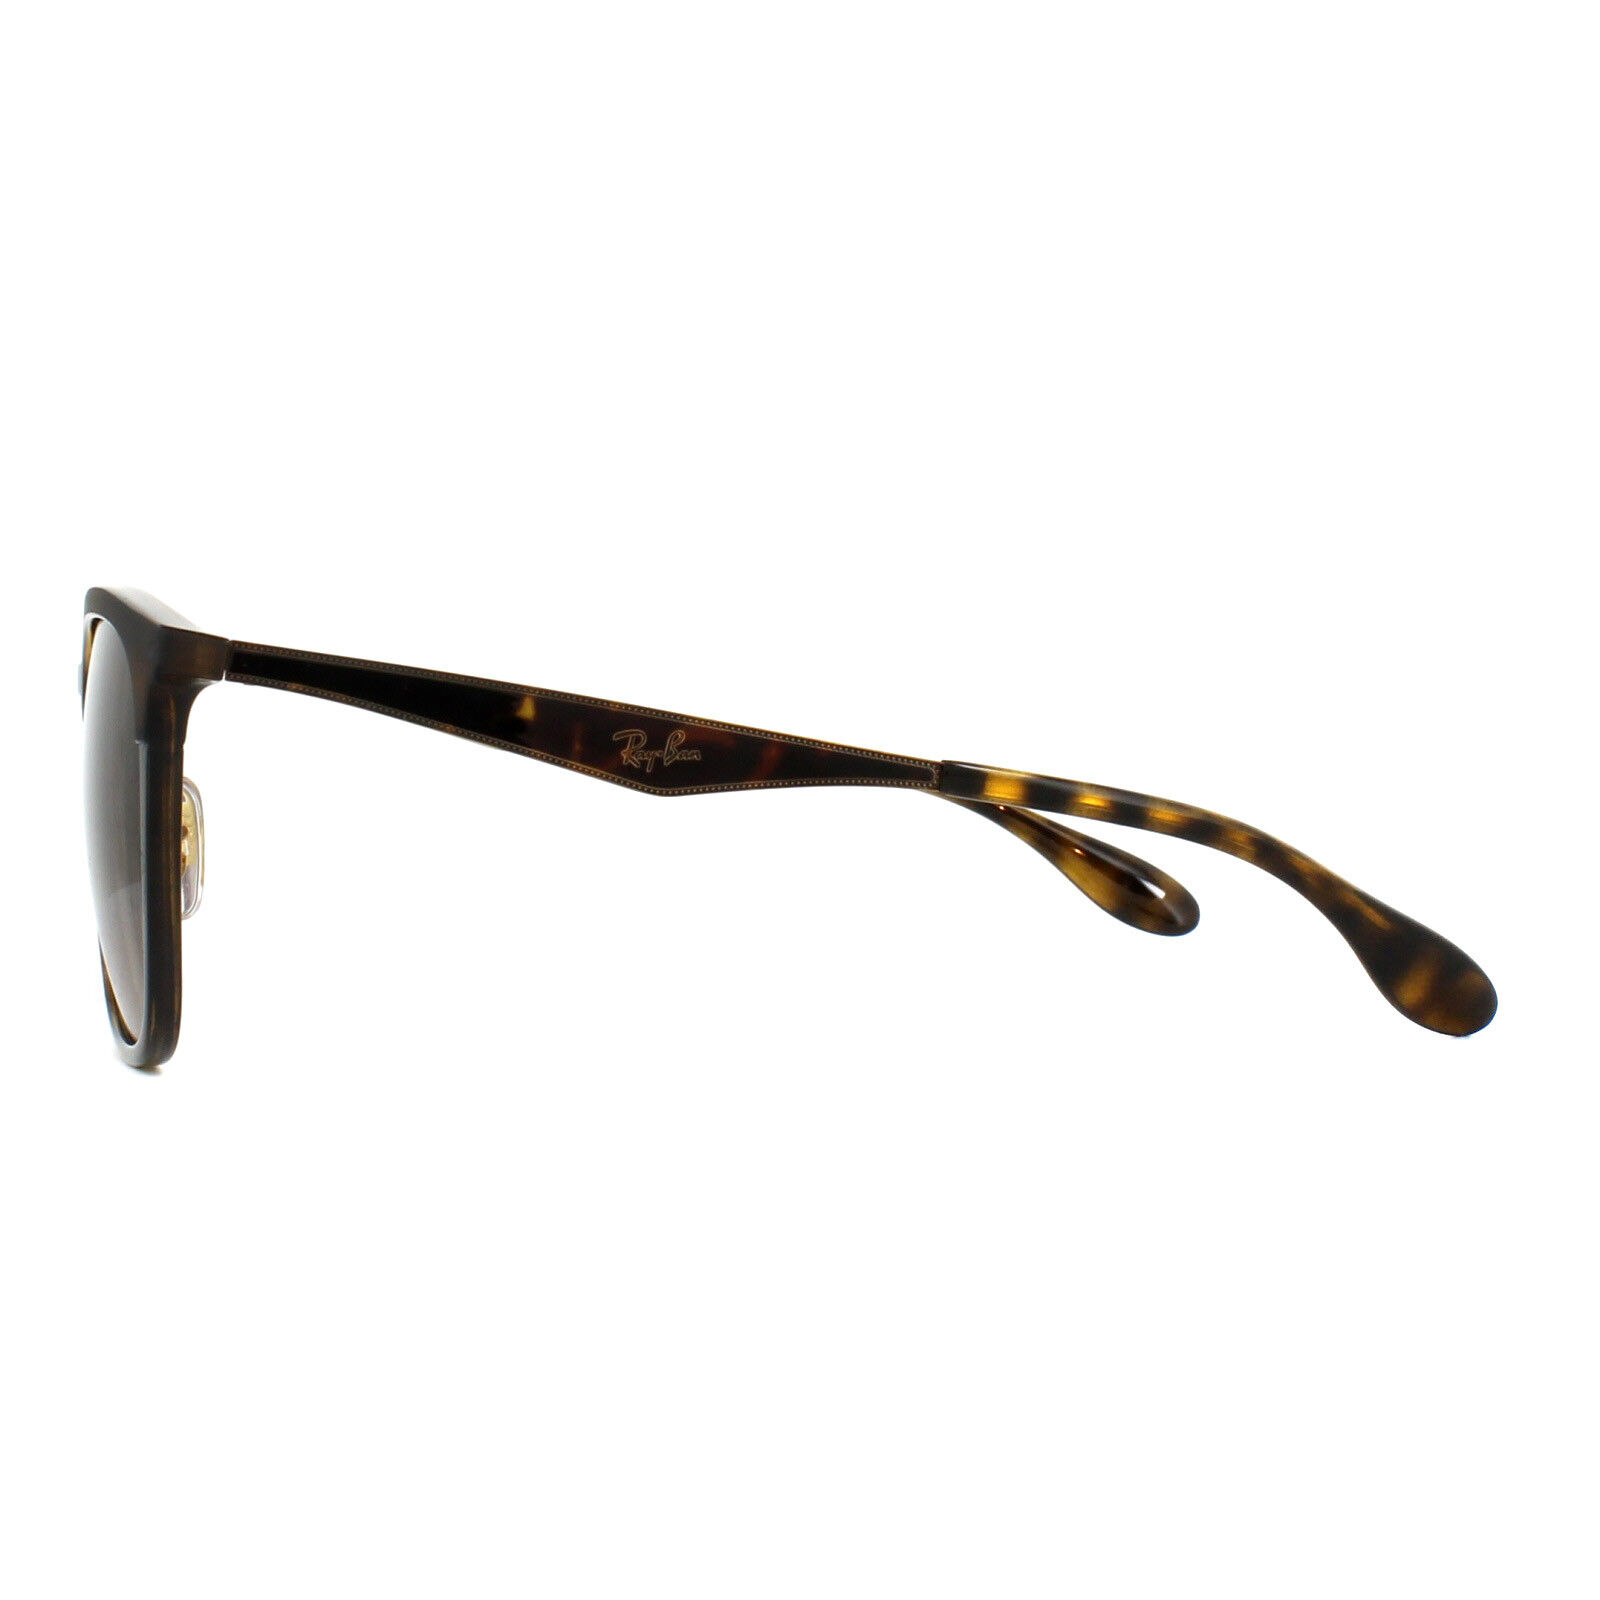 b63142a8b03 Ray-Ban Sunglasses Rb4278 628313 Tortoise Gold Brown Gradient for ...